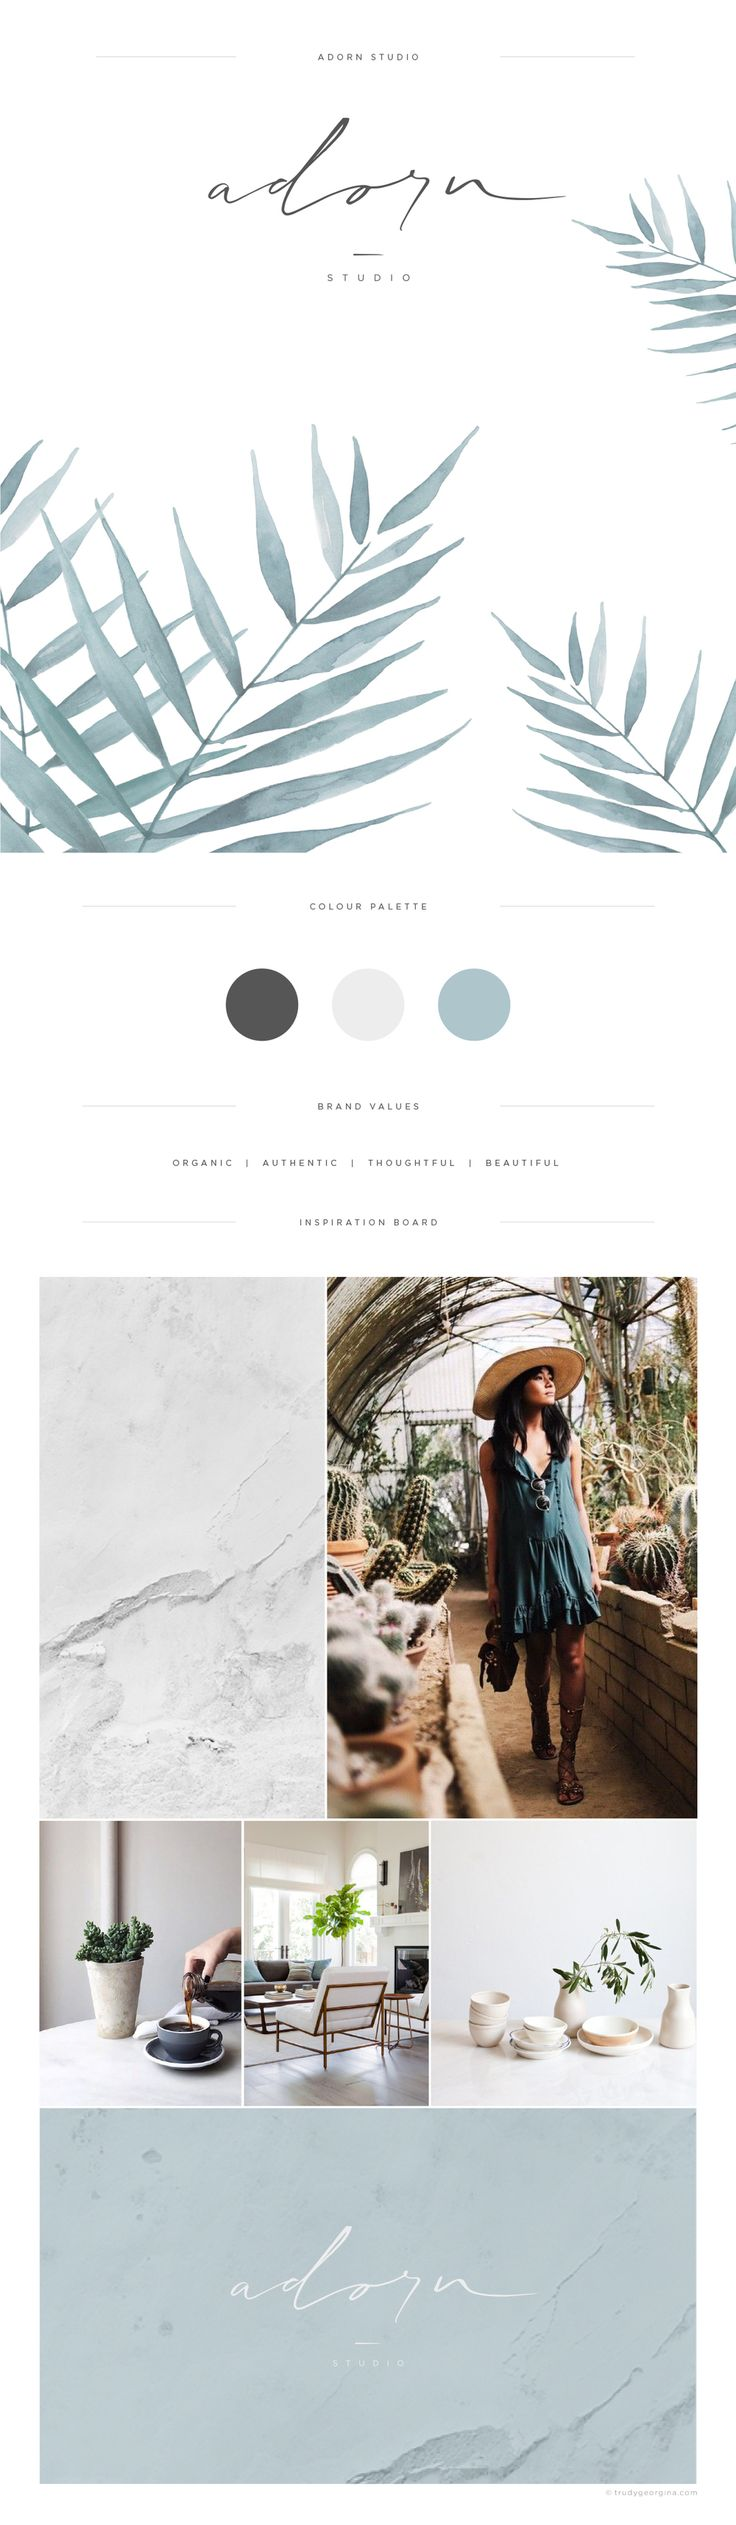 Fluid and organic brand identity for boutique retailer. The logo is crafted…